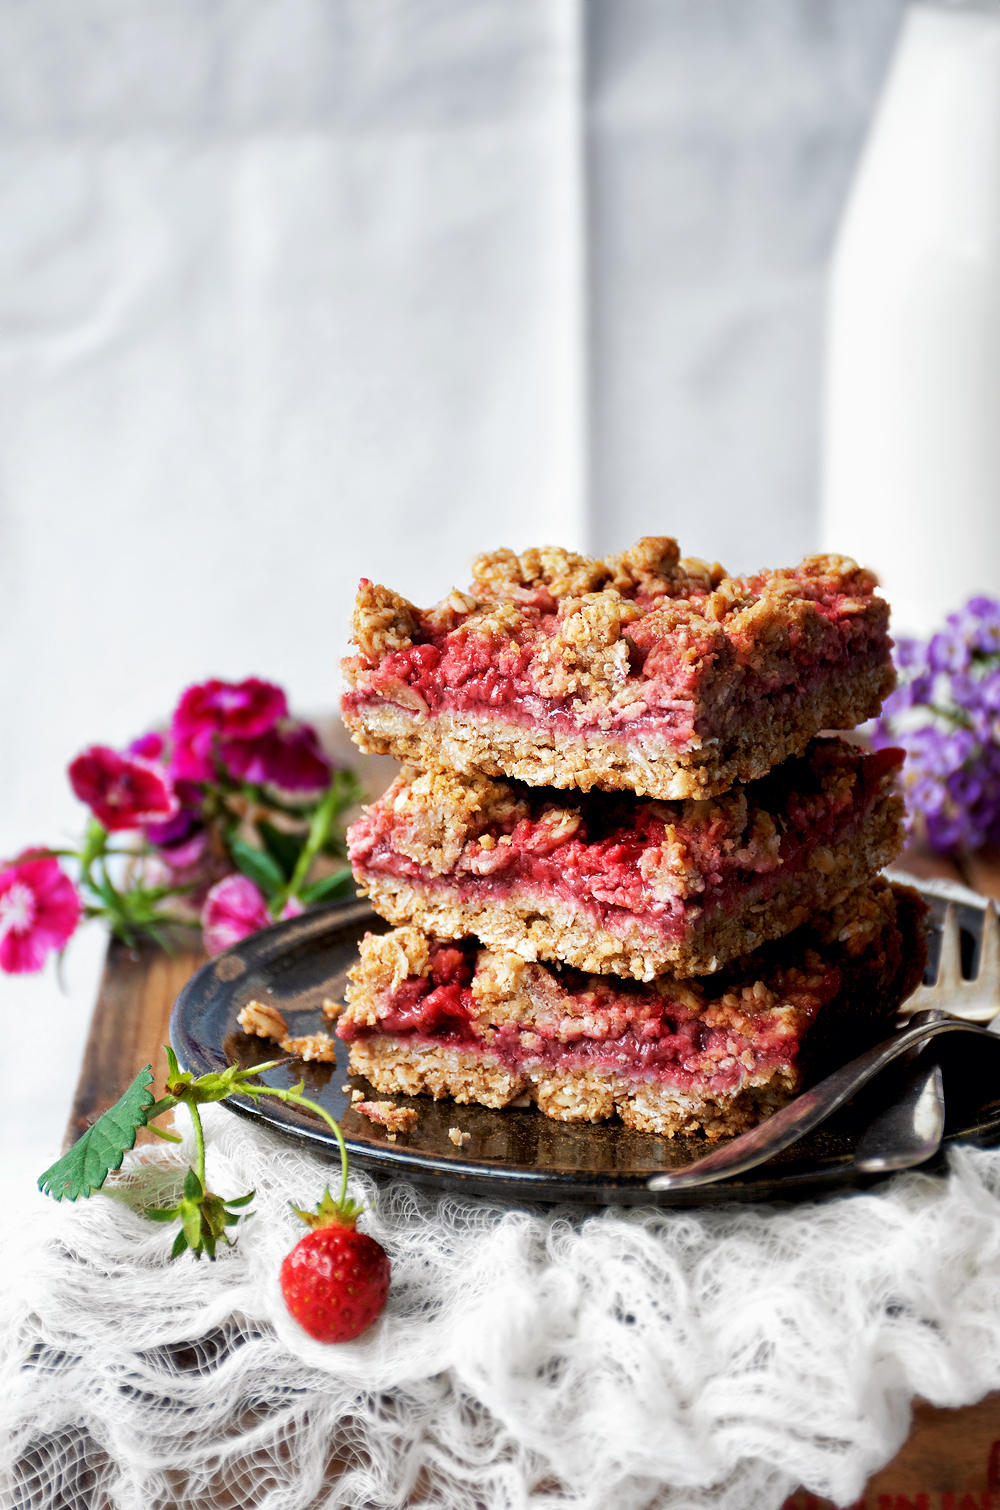 Vegan and gluten free strawberry crumble bars with an oat base and streusel, lots of seasonal berries, and a little coconut sugar for sweetness. These bars are great for an on the run breakfast or snack, and equally good served with ice cream as a healthier dessert.